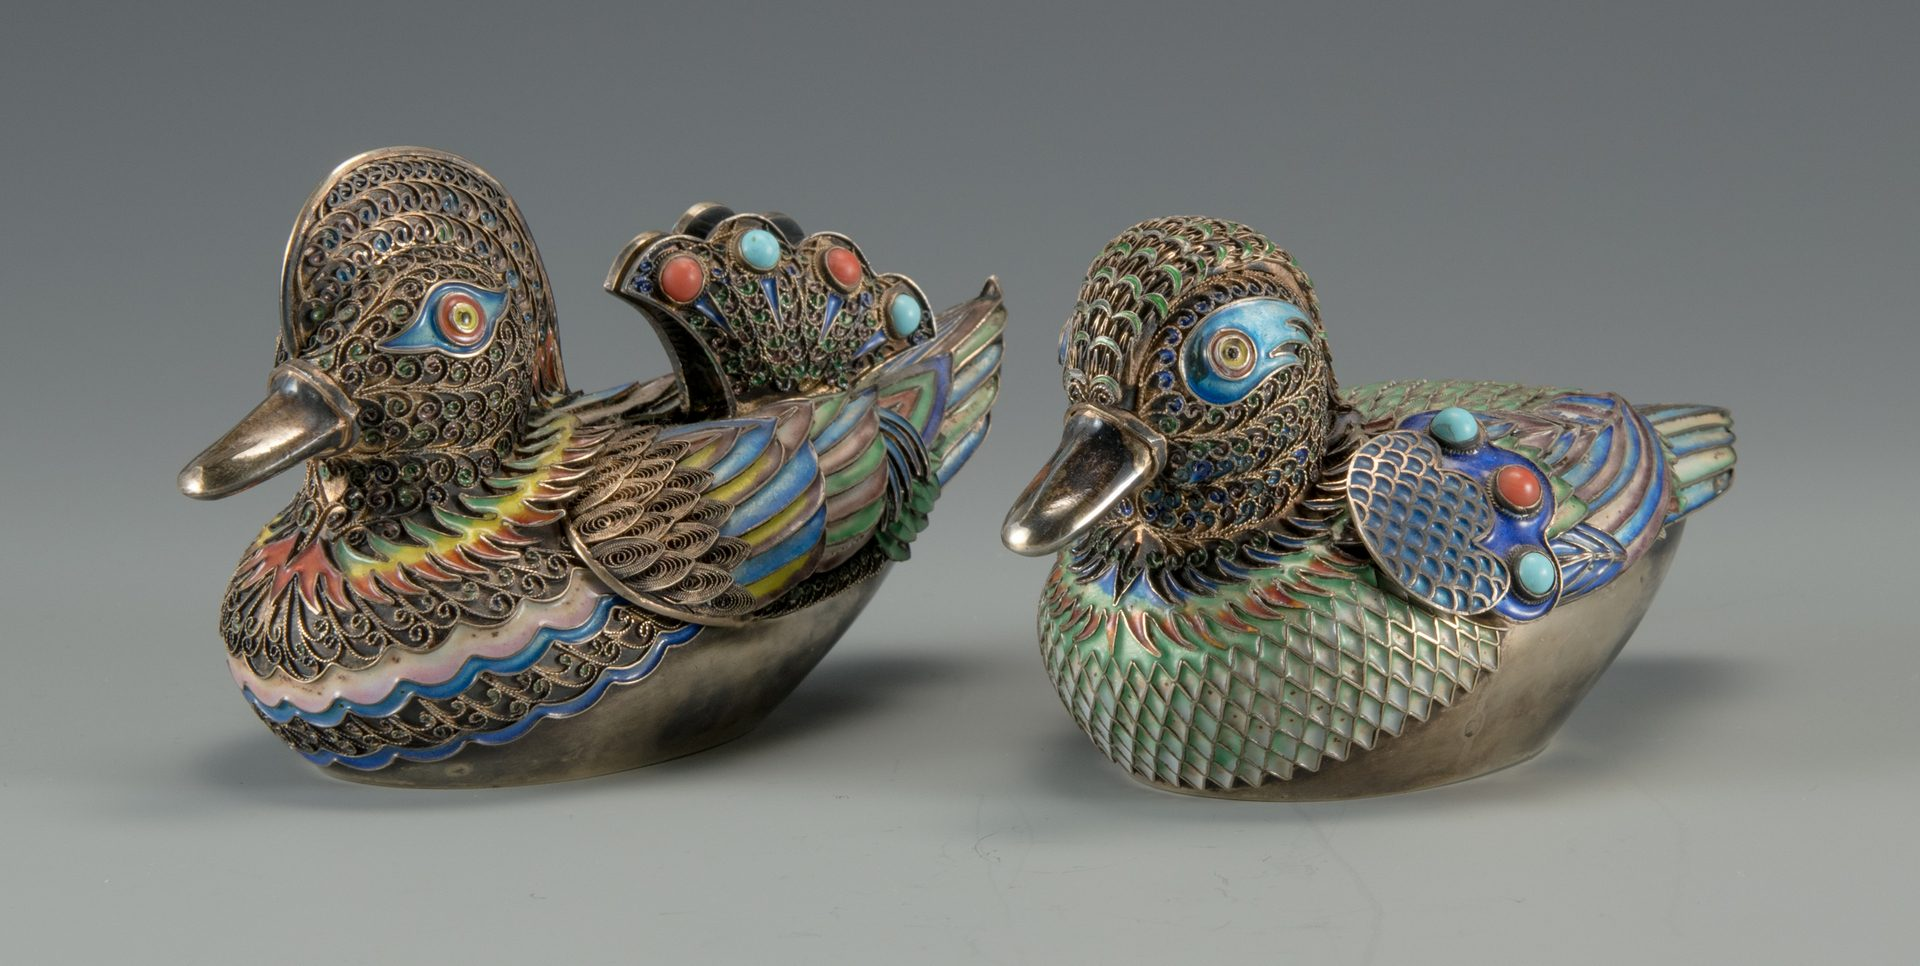 Lot 4: Pr. Asian Cloisonne Enamel Ducks